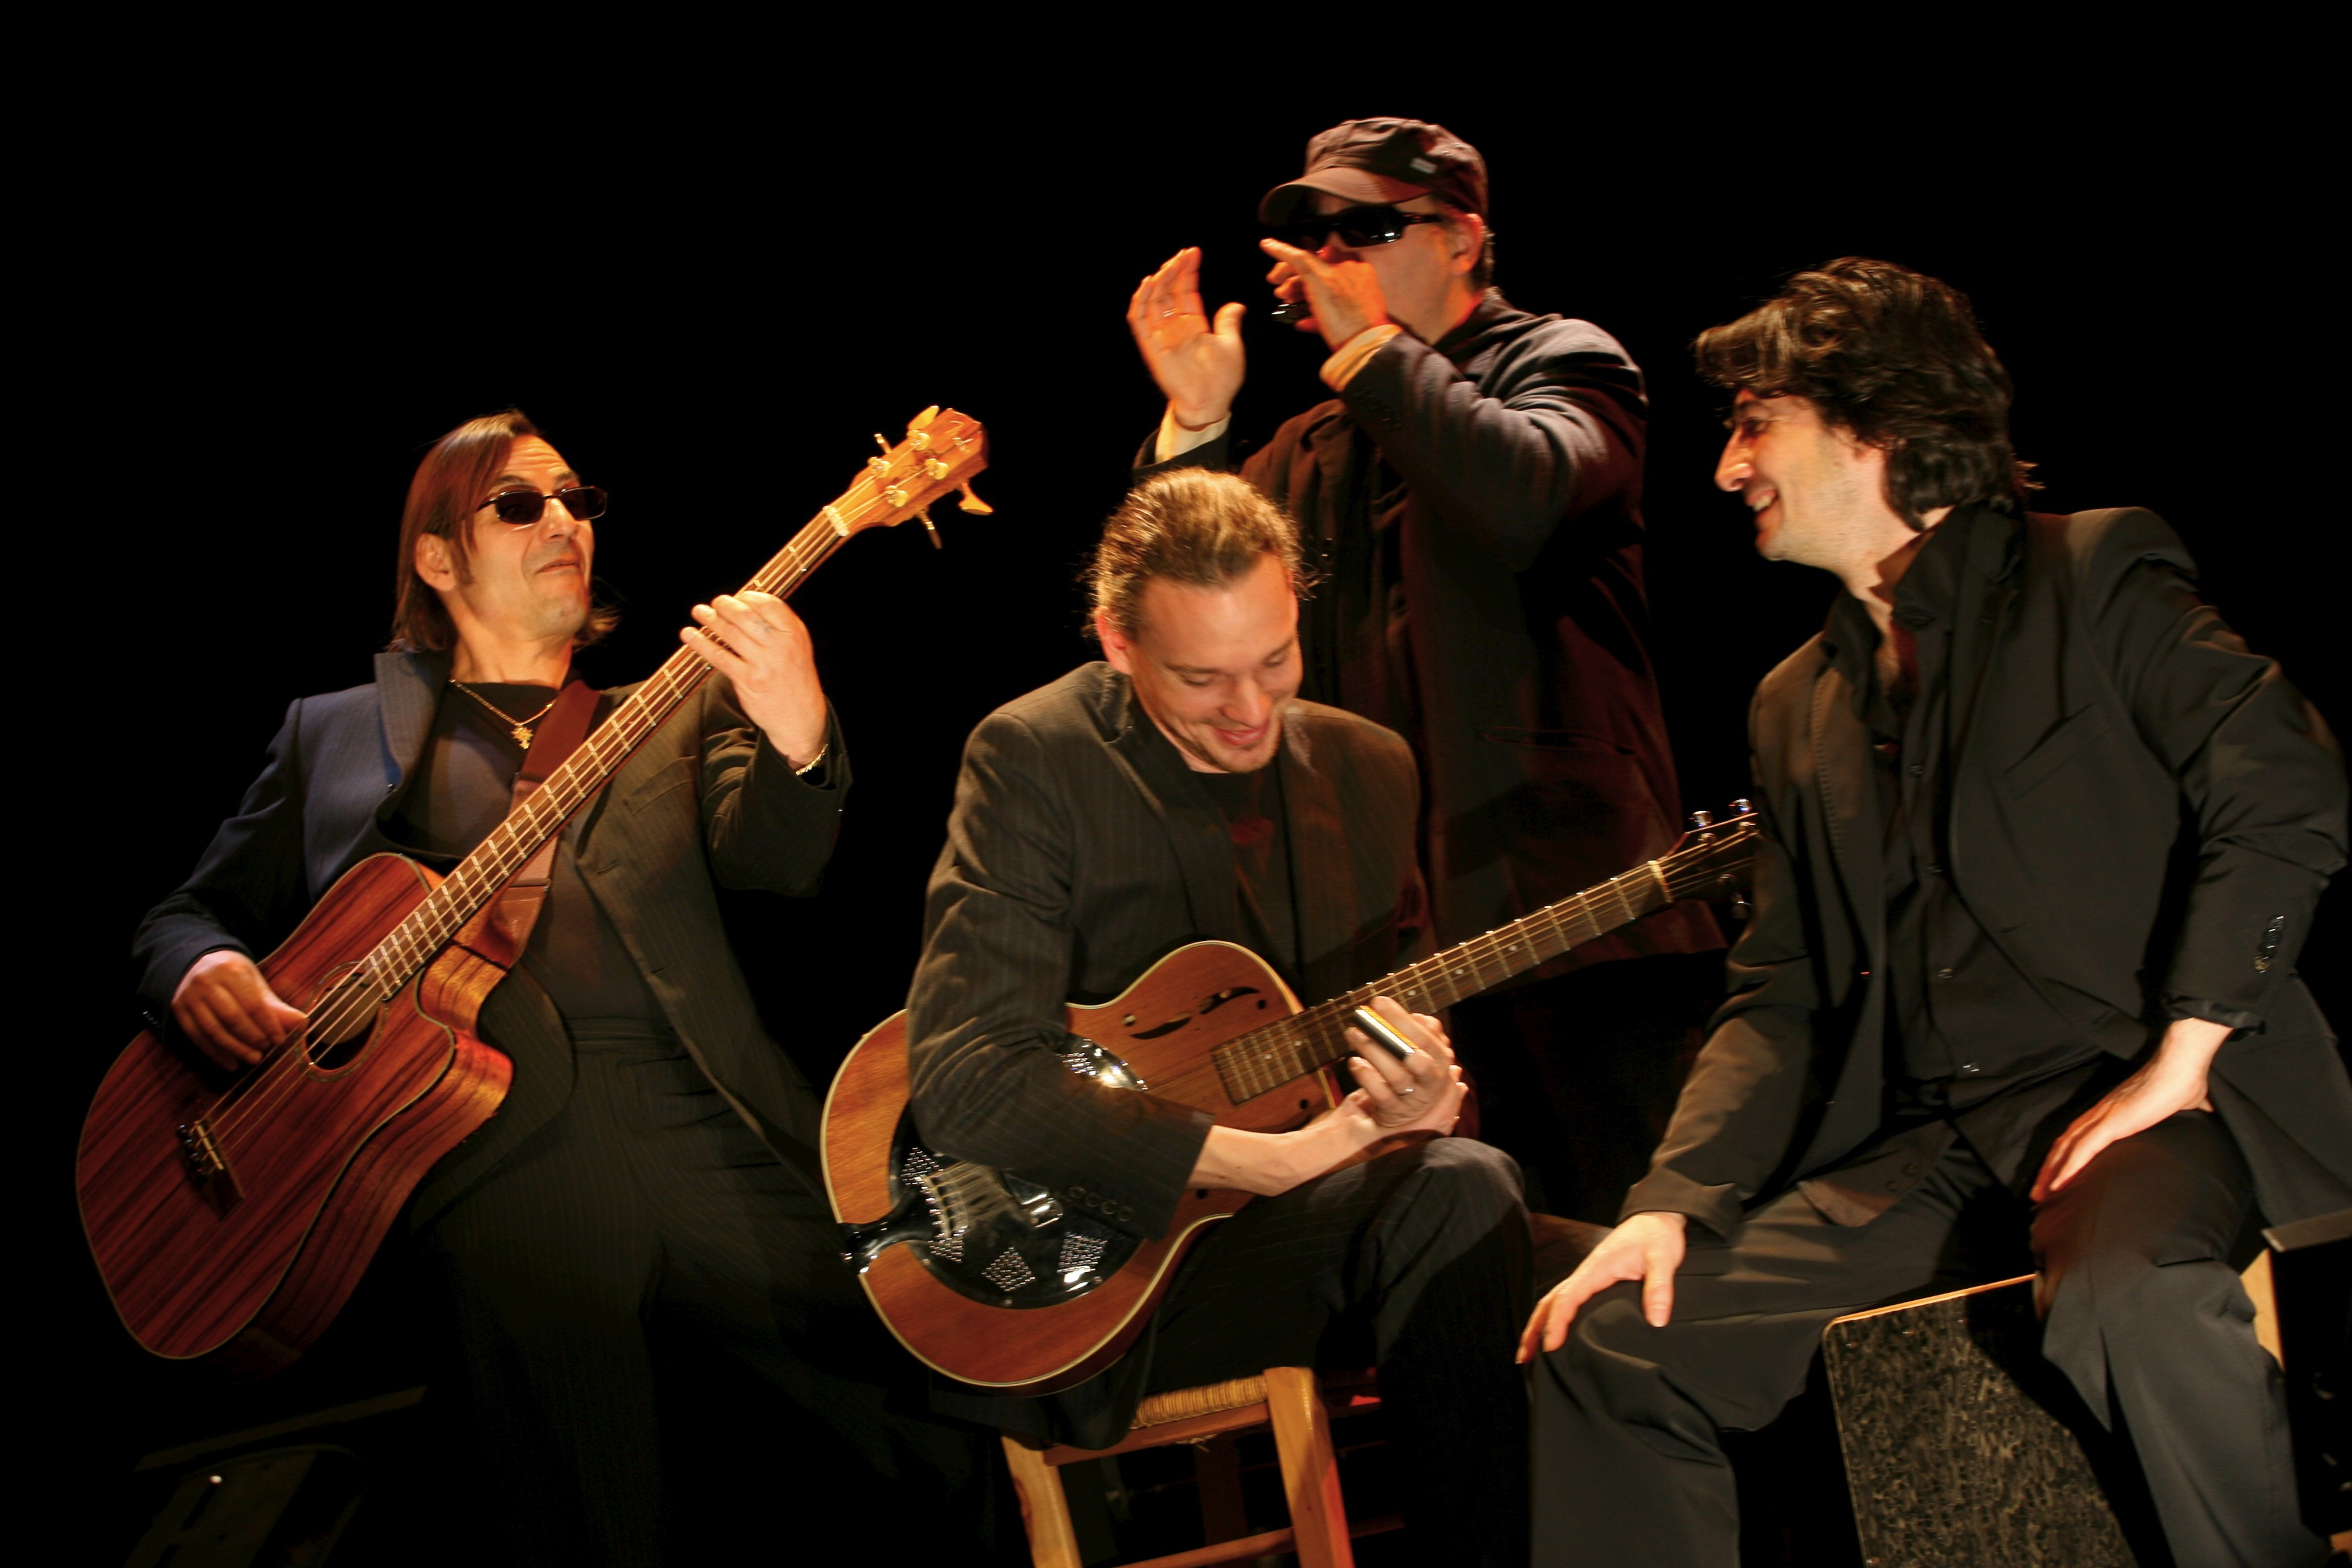 Nico Backton & the Wizards of Blues